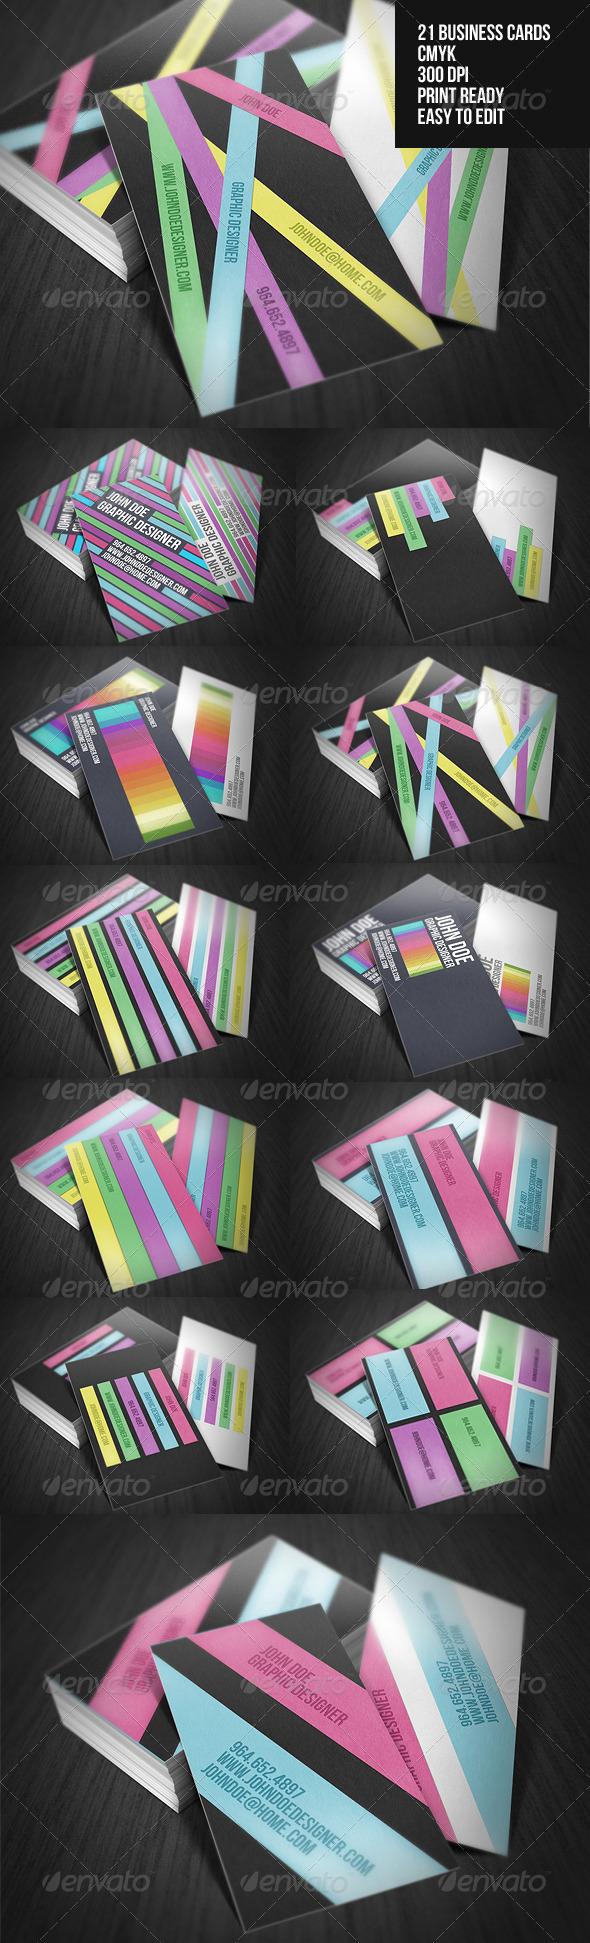 Graphic River Colorful Business Cards Pack Print Templates -  Business Cards  Creative 1505745